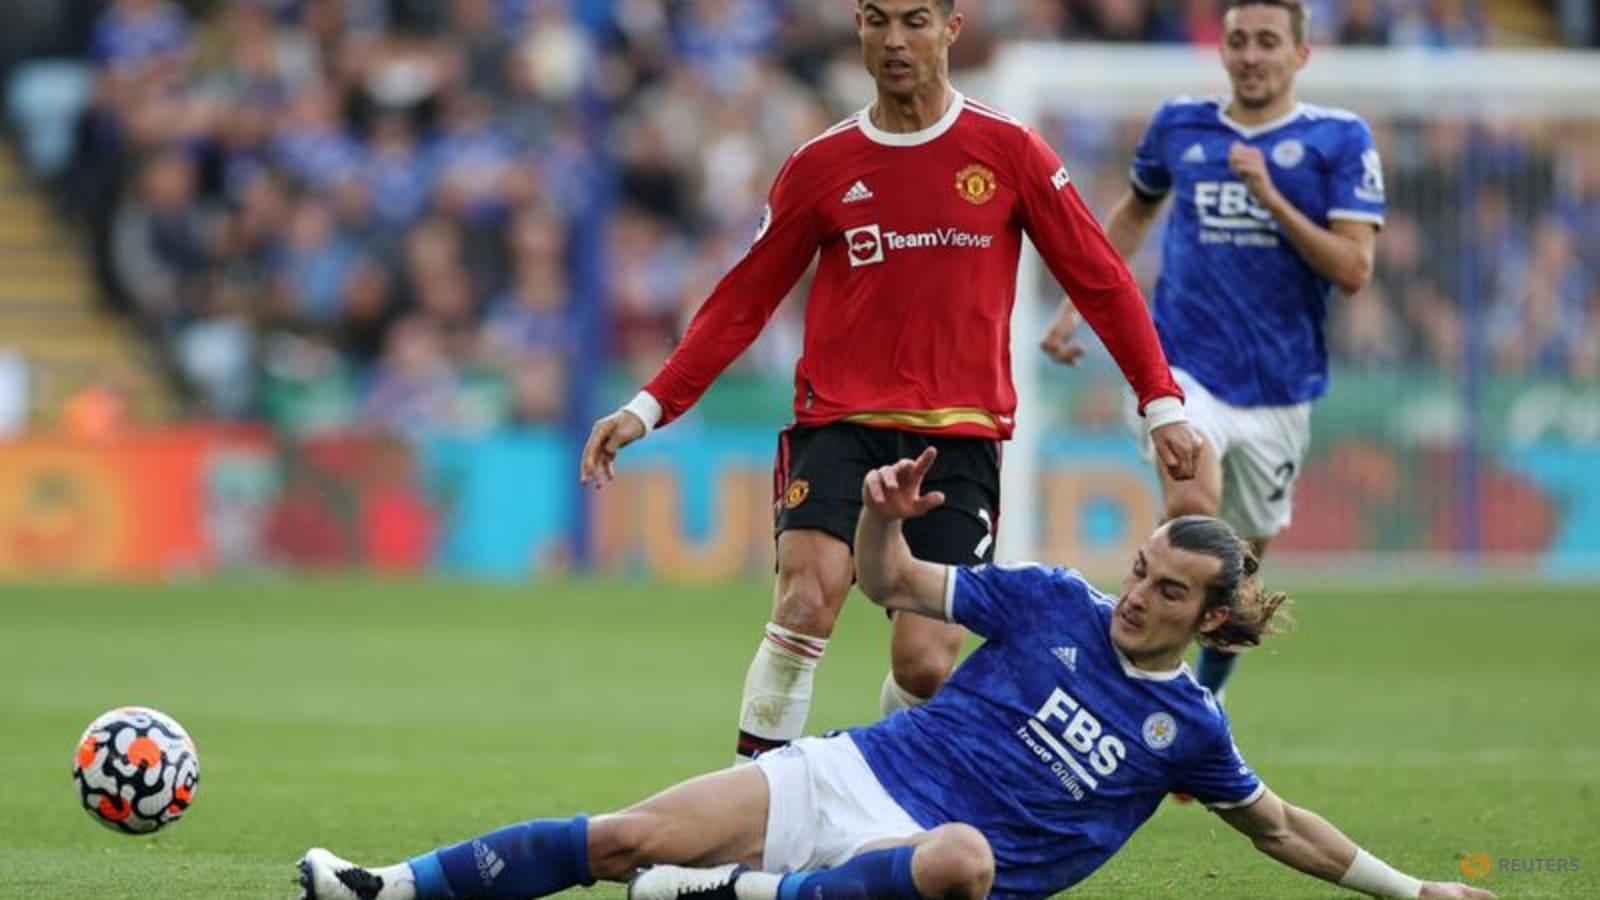 United stumble again as City and Liverpool march on